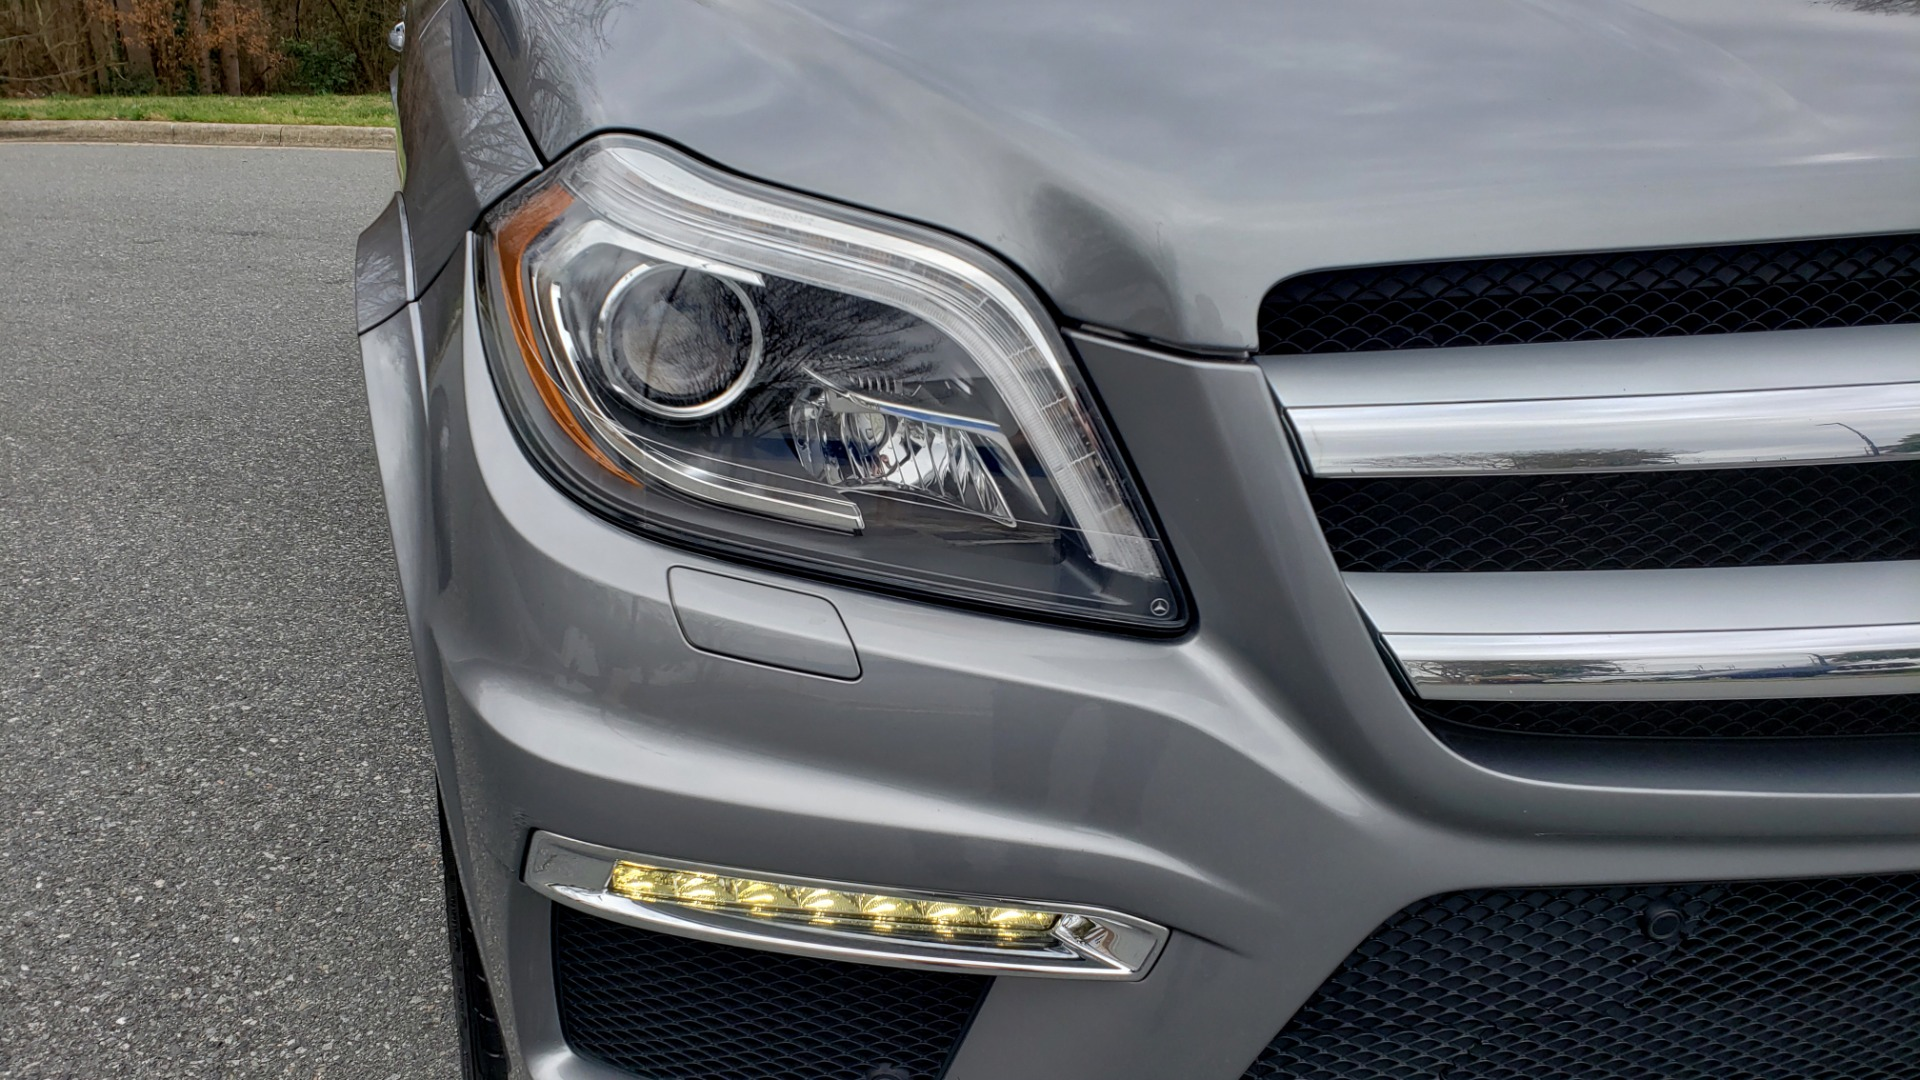 Used 2016 Mercedes-Benz GL 550 4MATIC / NAV / DRVR ASST / DUAL-ROOF / REARVIEW for sale Sold at Formula Imports in Charlotte NC 28227 24